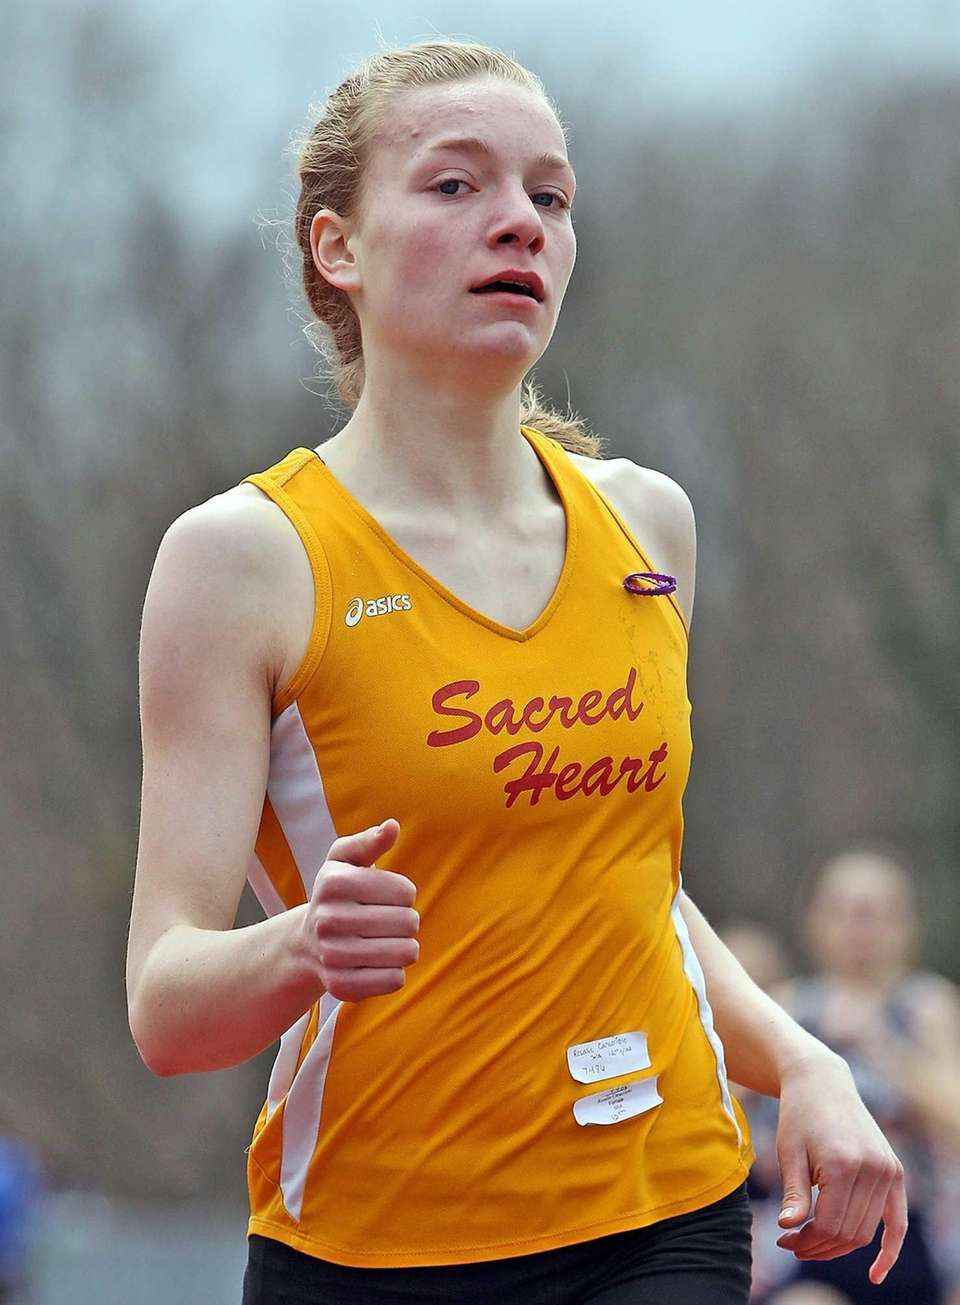 Sacred Heart's s Rosalie Caracciolo takes first in